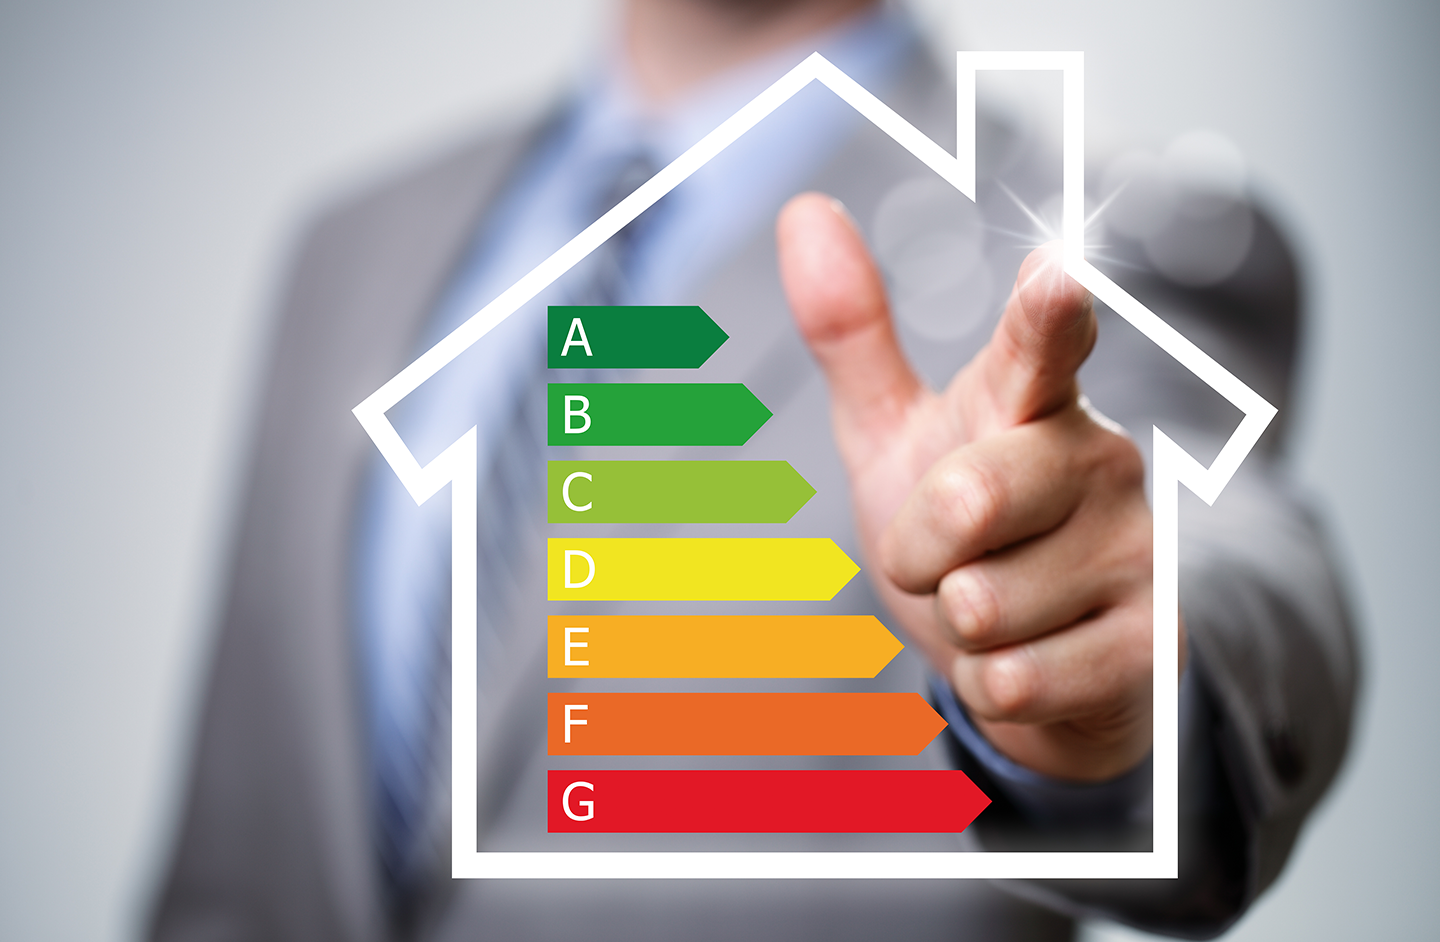 New Minimum Energy Efficiency Standards (MEES) have been introduced